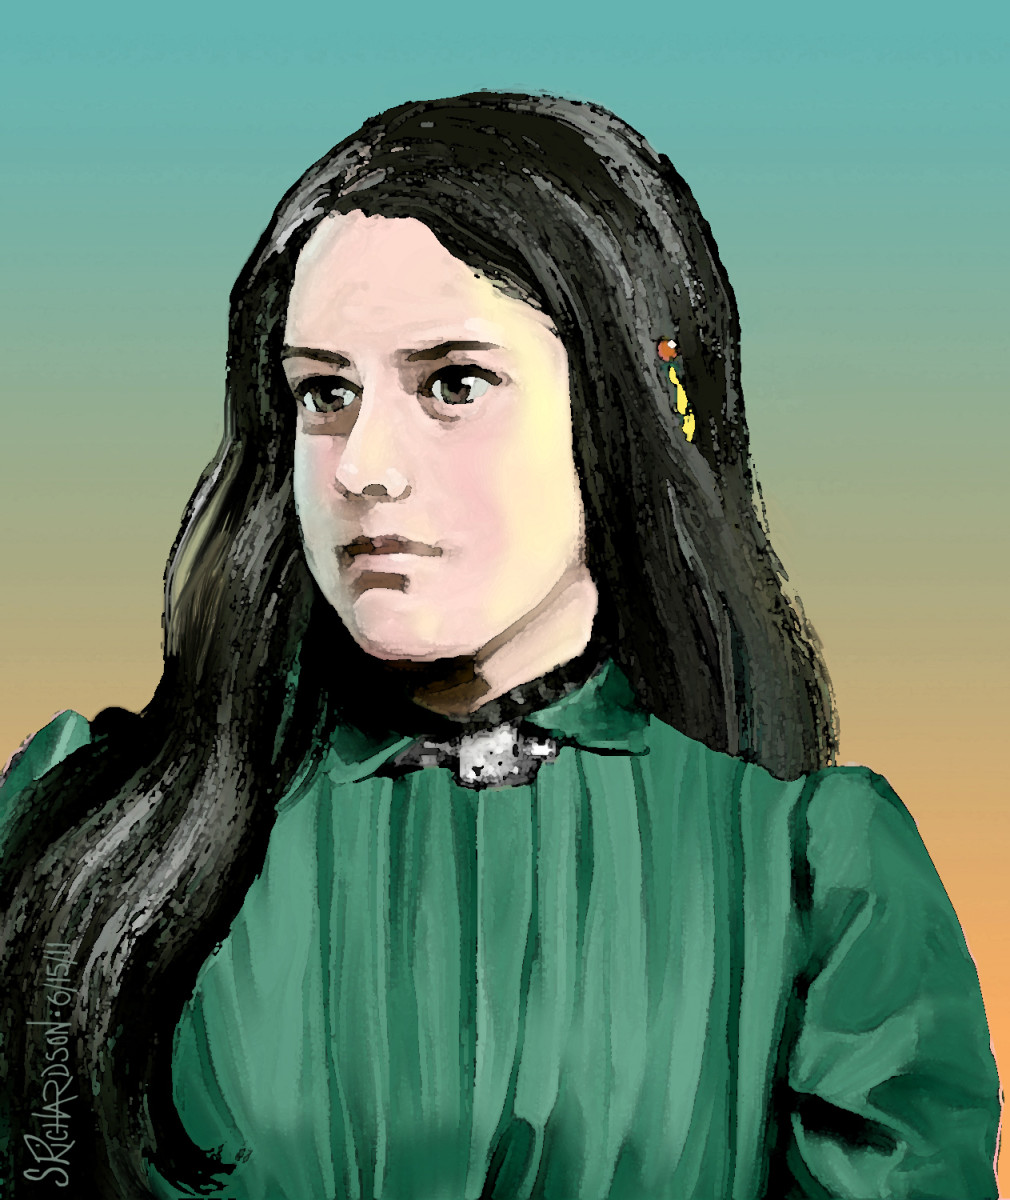 Marcia Pascal - half Cherokee. Daughter of Col. Pascal. This is an artist's conception of a colored version, by the author.